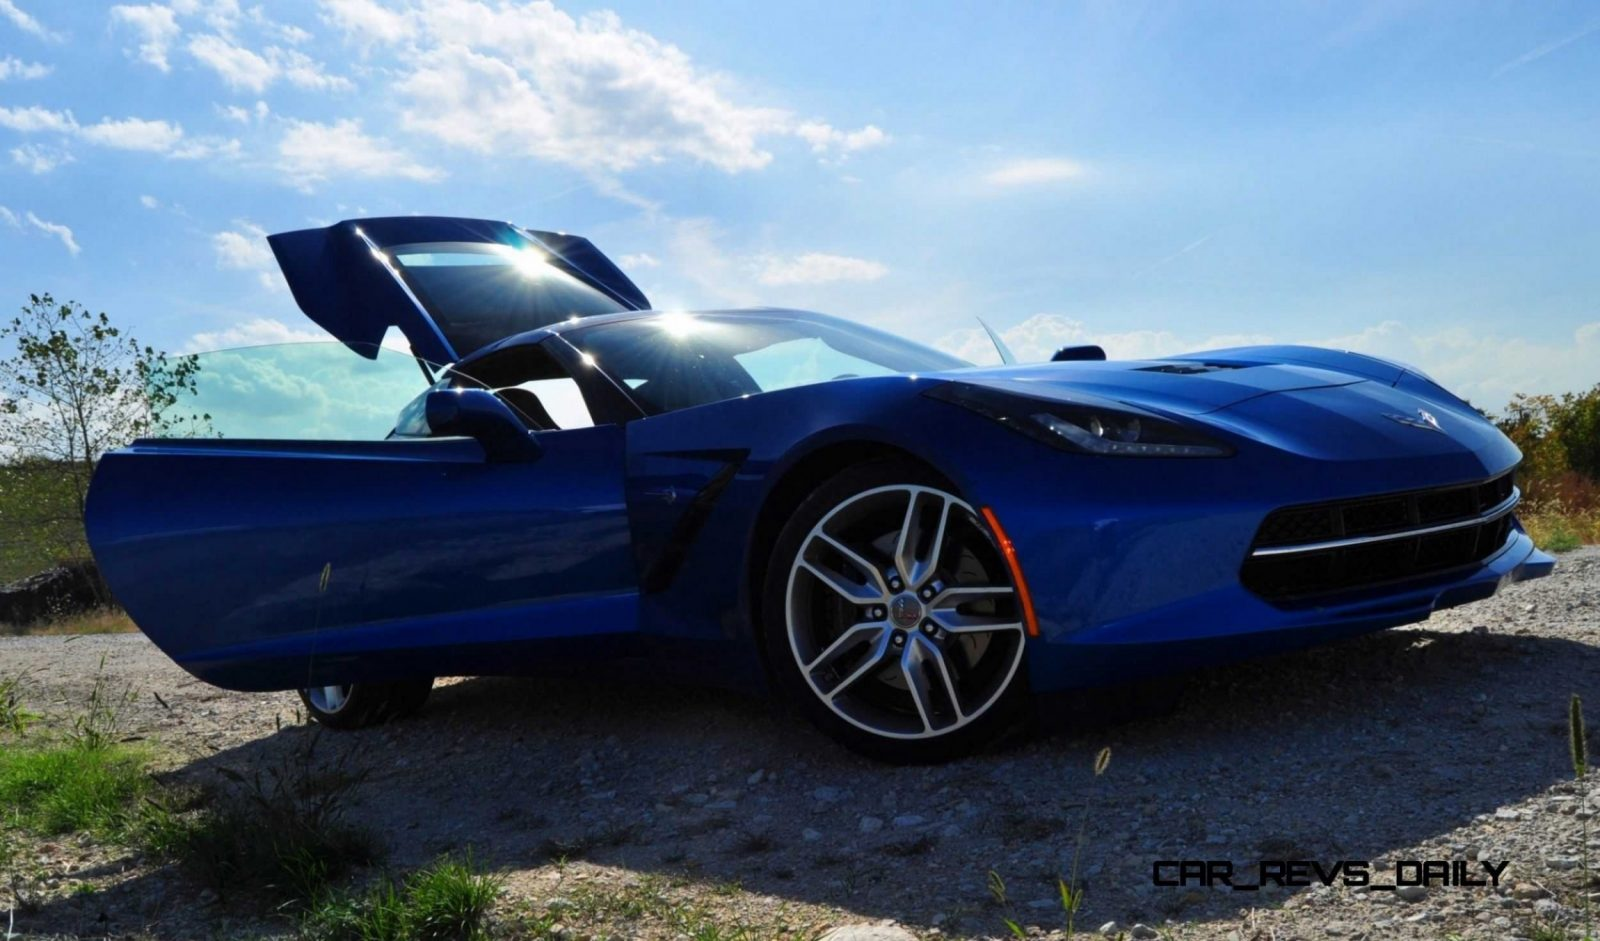 2014 Chevrolet Corvette Stingray Z51 in 102 Photos50